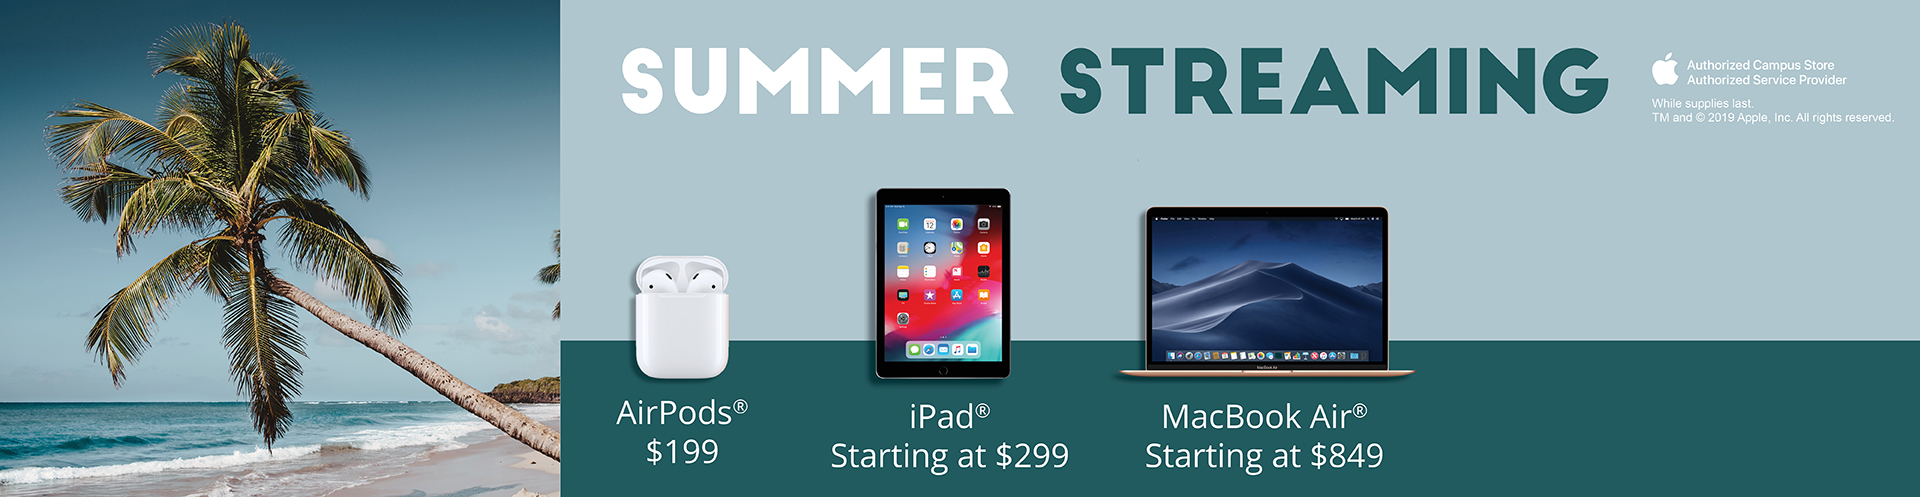 Check out these Apple Products for available Summer Streaming!